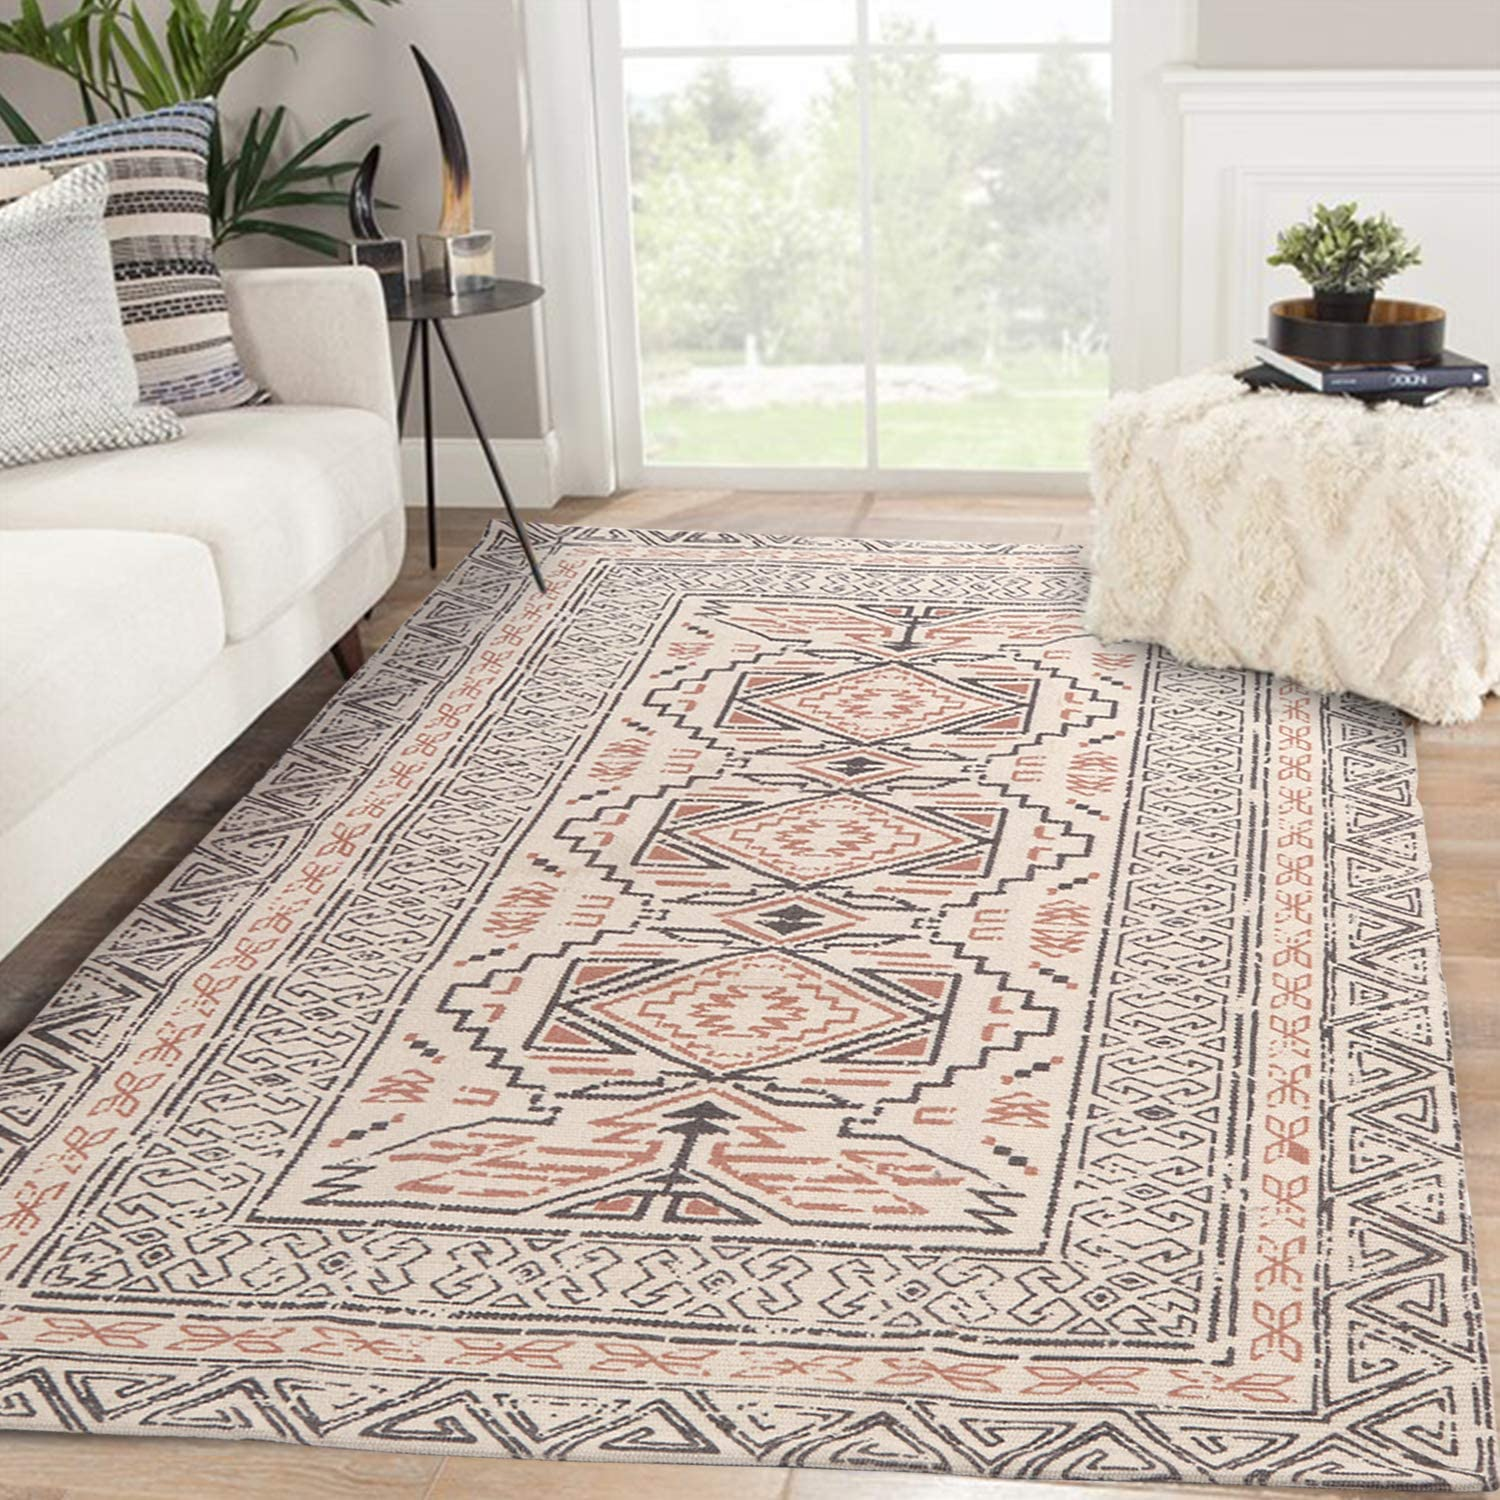 Bohemian Cotton Area Rug 4' x 6', KIMODE Woven Fringe Throw Rugs Farmhouse Modern Geometric Collection Rugs Machine Washable Indoor Floor Runner Rug for Porch Kitchen Bedroom Living Room